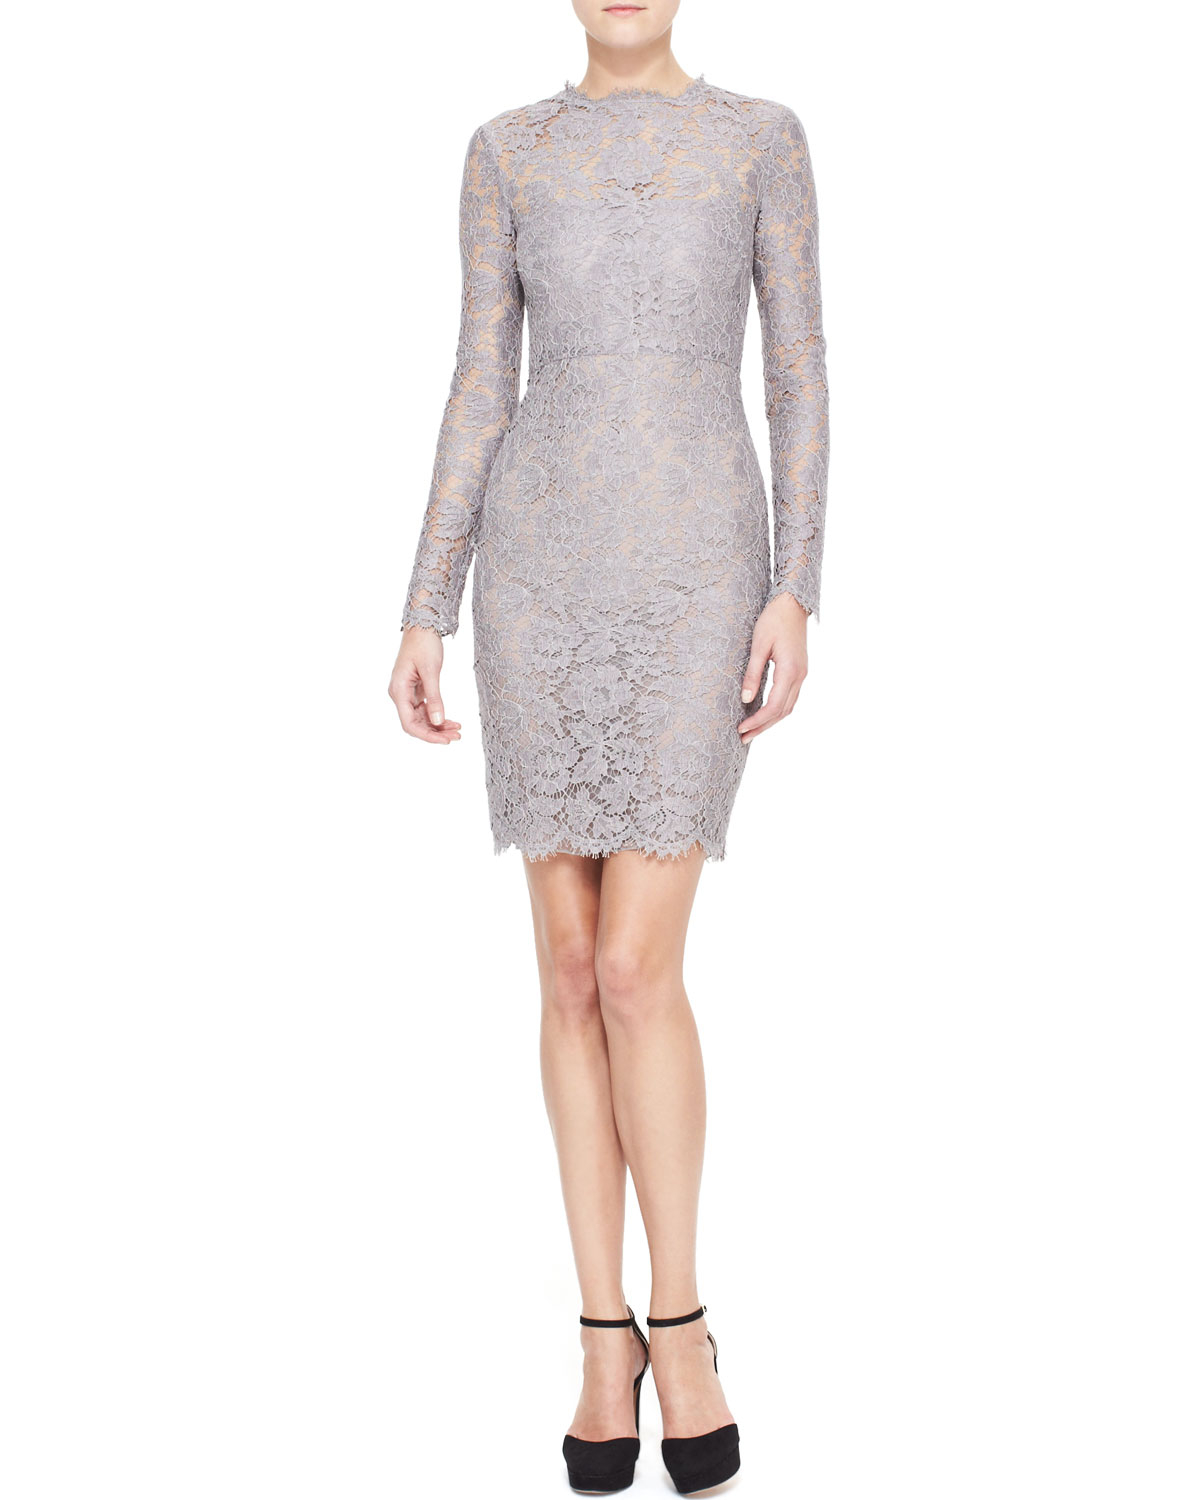 Lace inserts long sleeves dress Valentino Buy Cheap Manchester Cheapest Get Online oVgoDXx